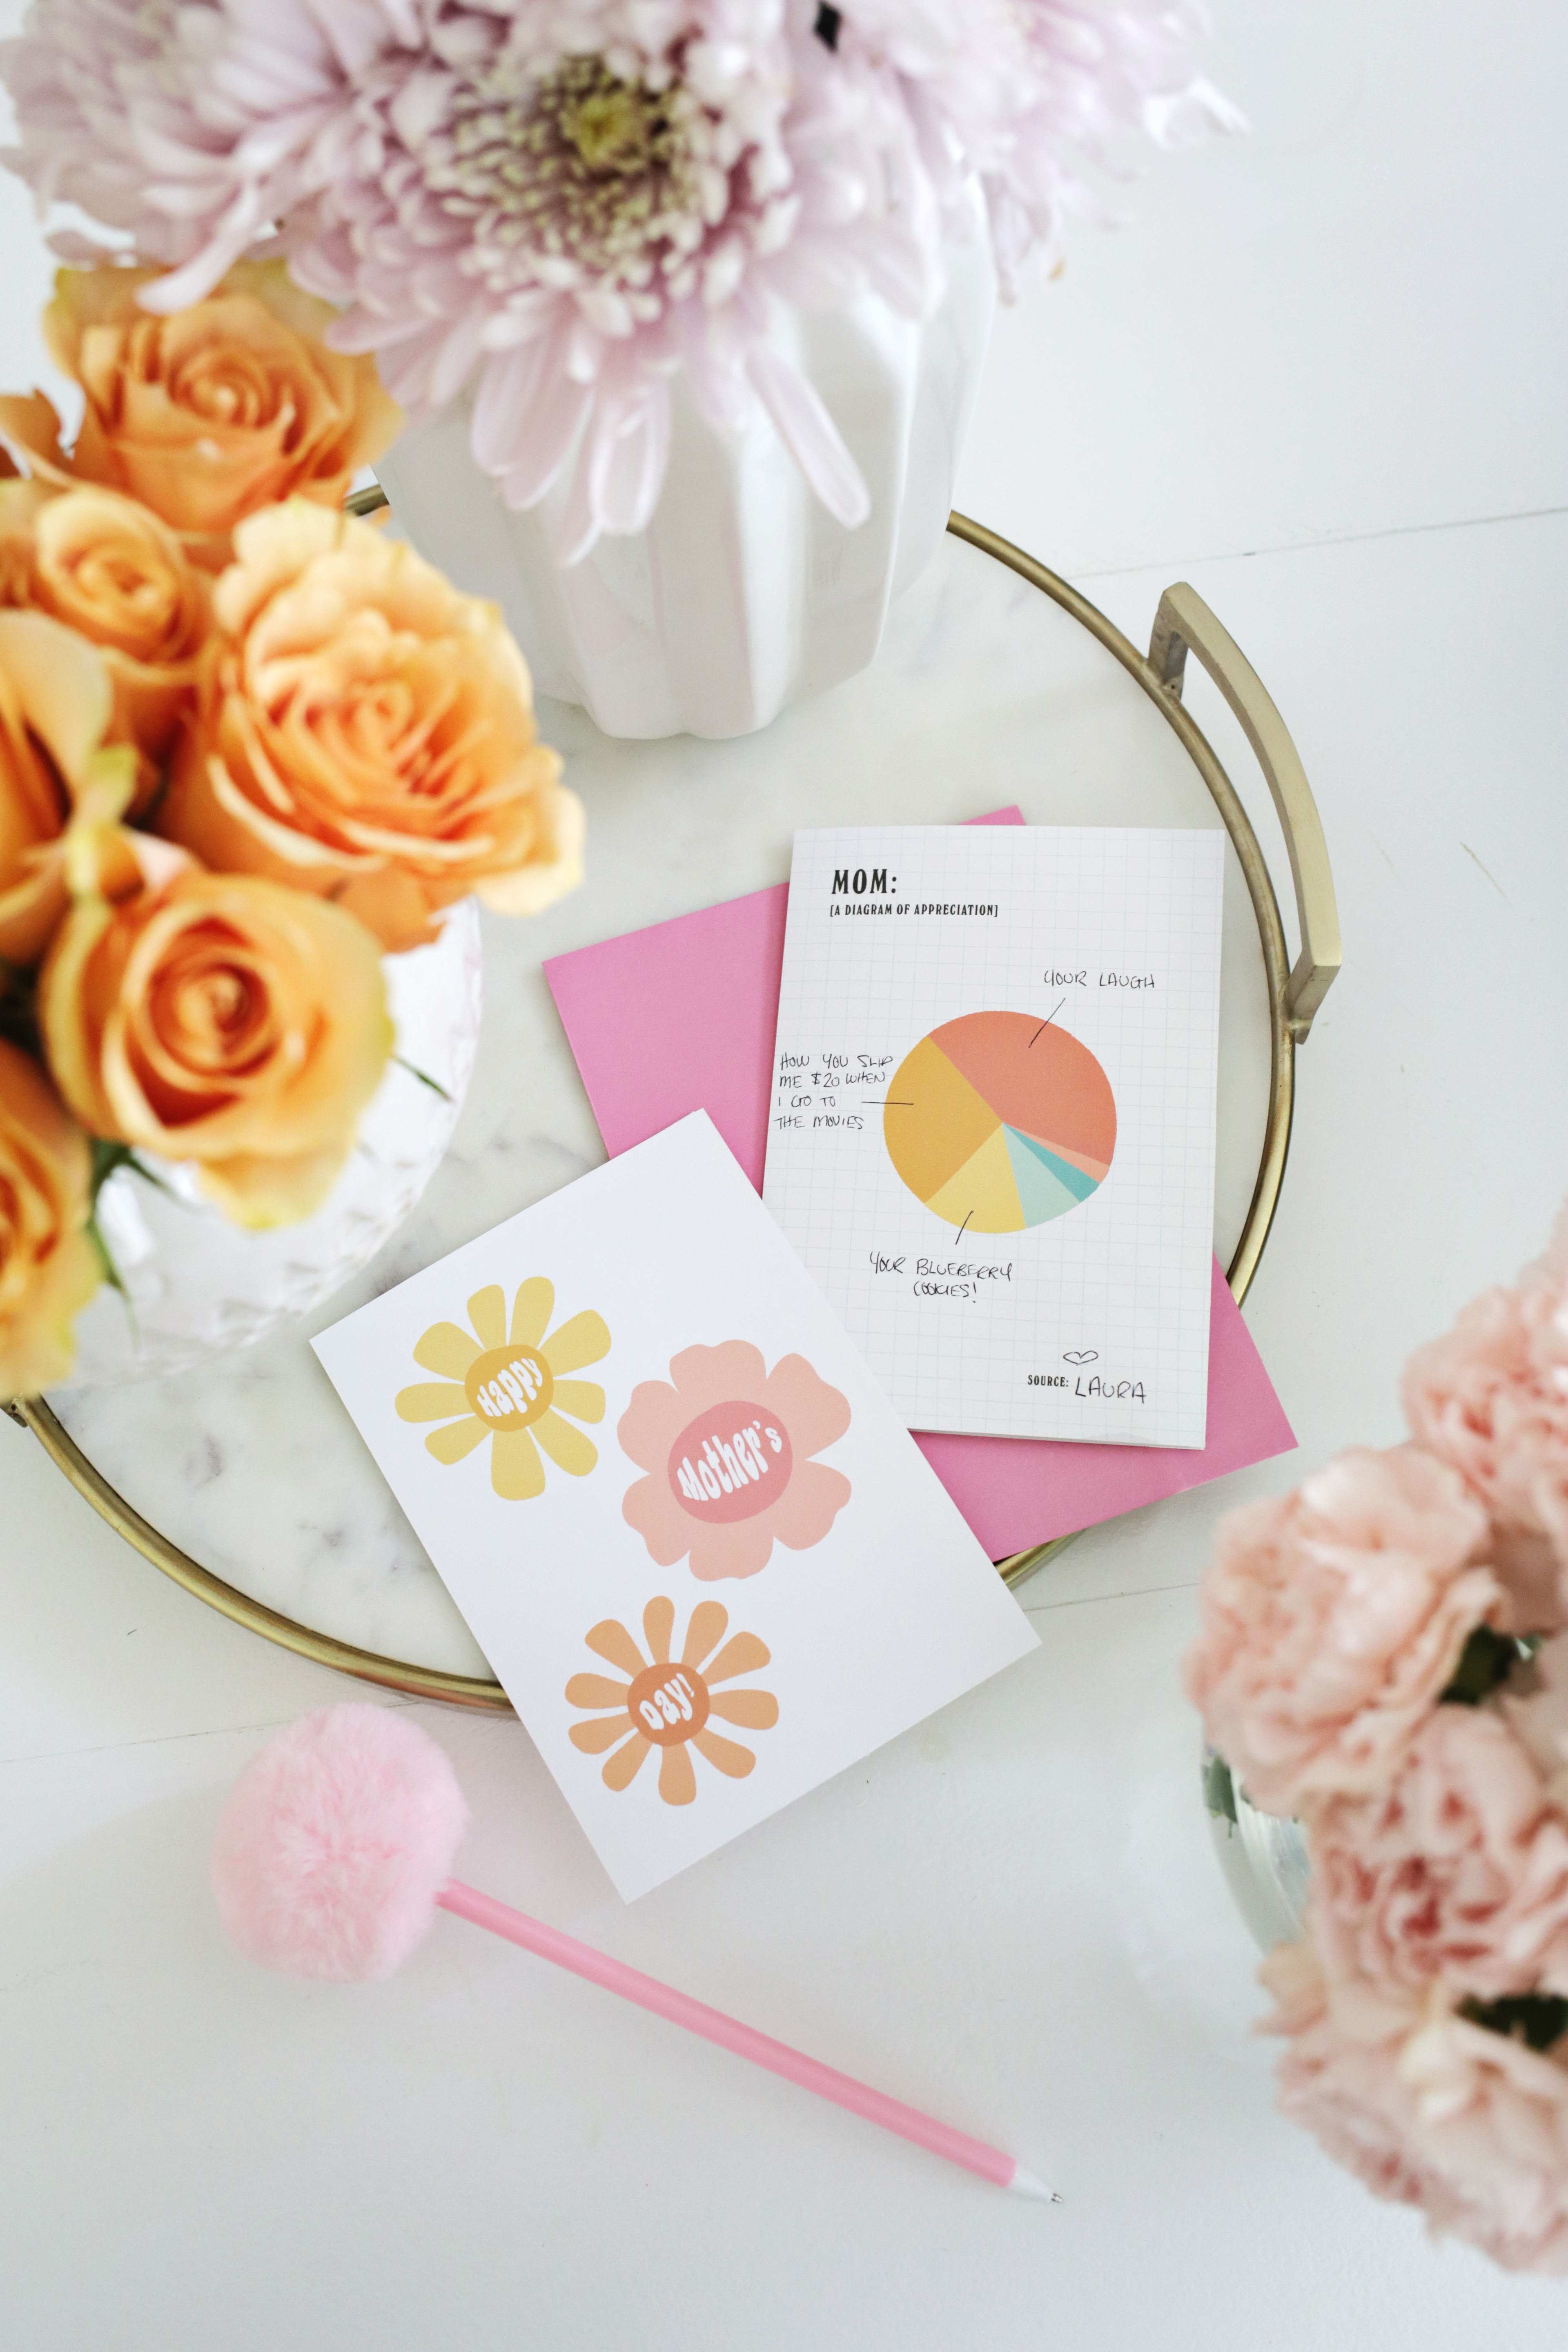 Mother's Day Card Printables (They're Free!) - A Beautiful Mess - Free Printable Mothers Day Cards Blue Mountain